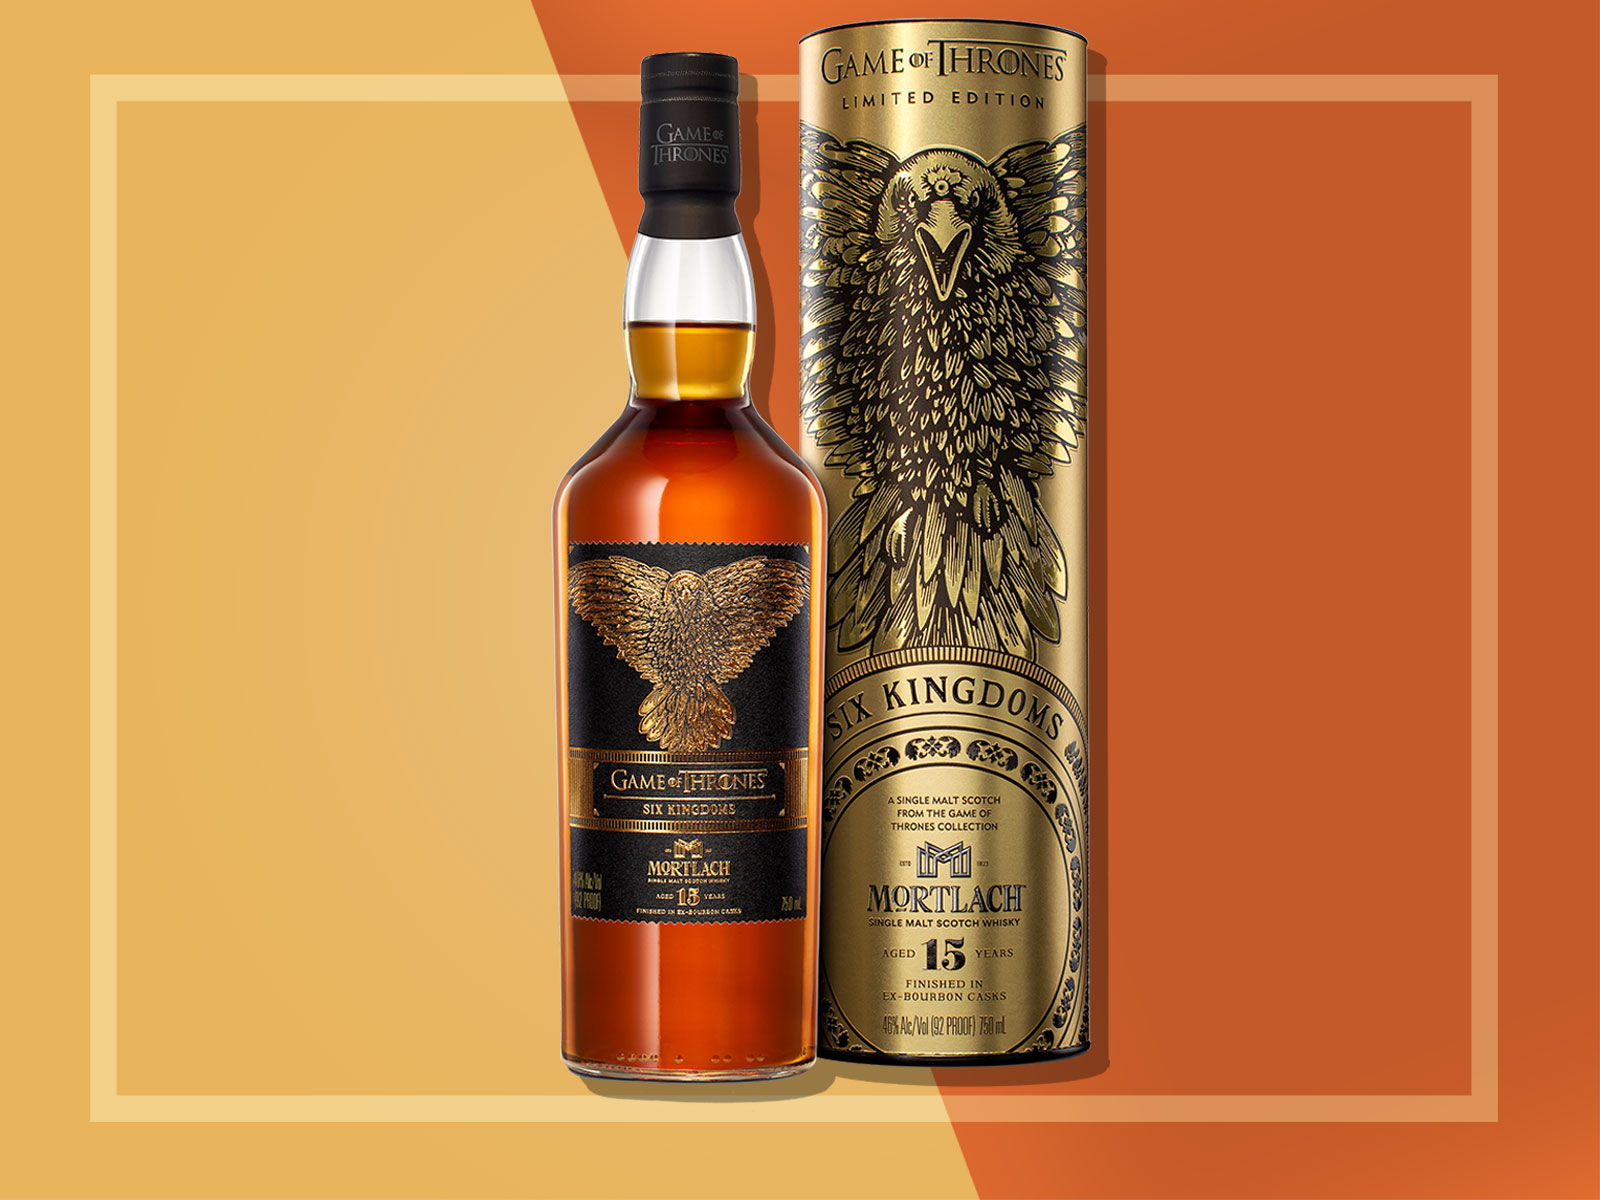 Game of Thrones Six Kingdoms Whisky